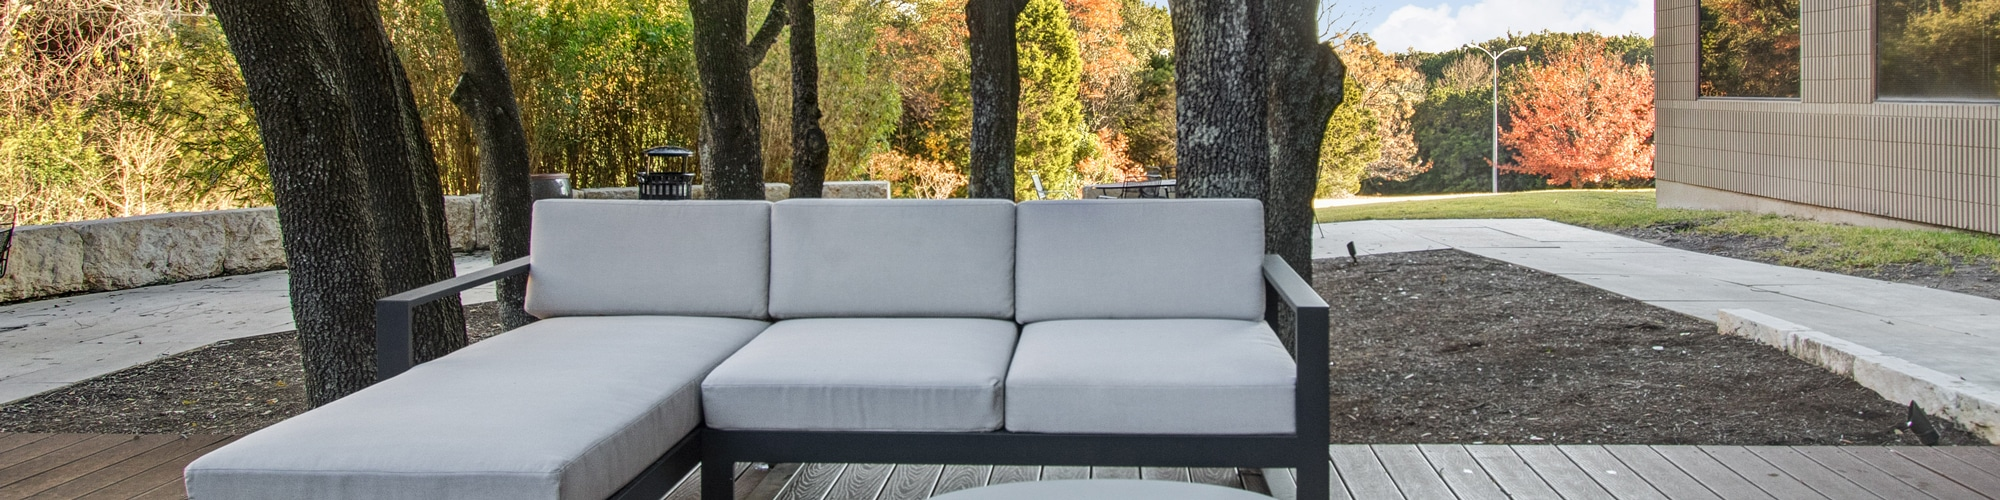 Pennybacker-Commons-OutdoorSeating